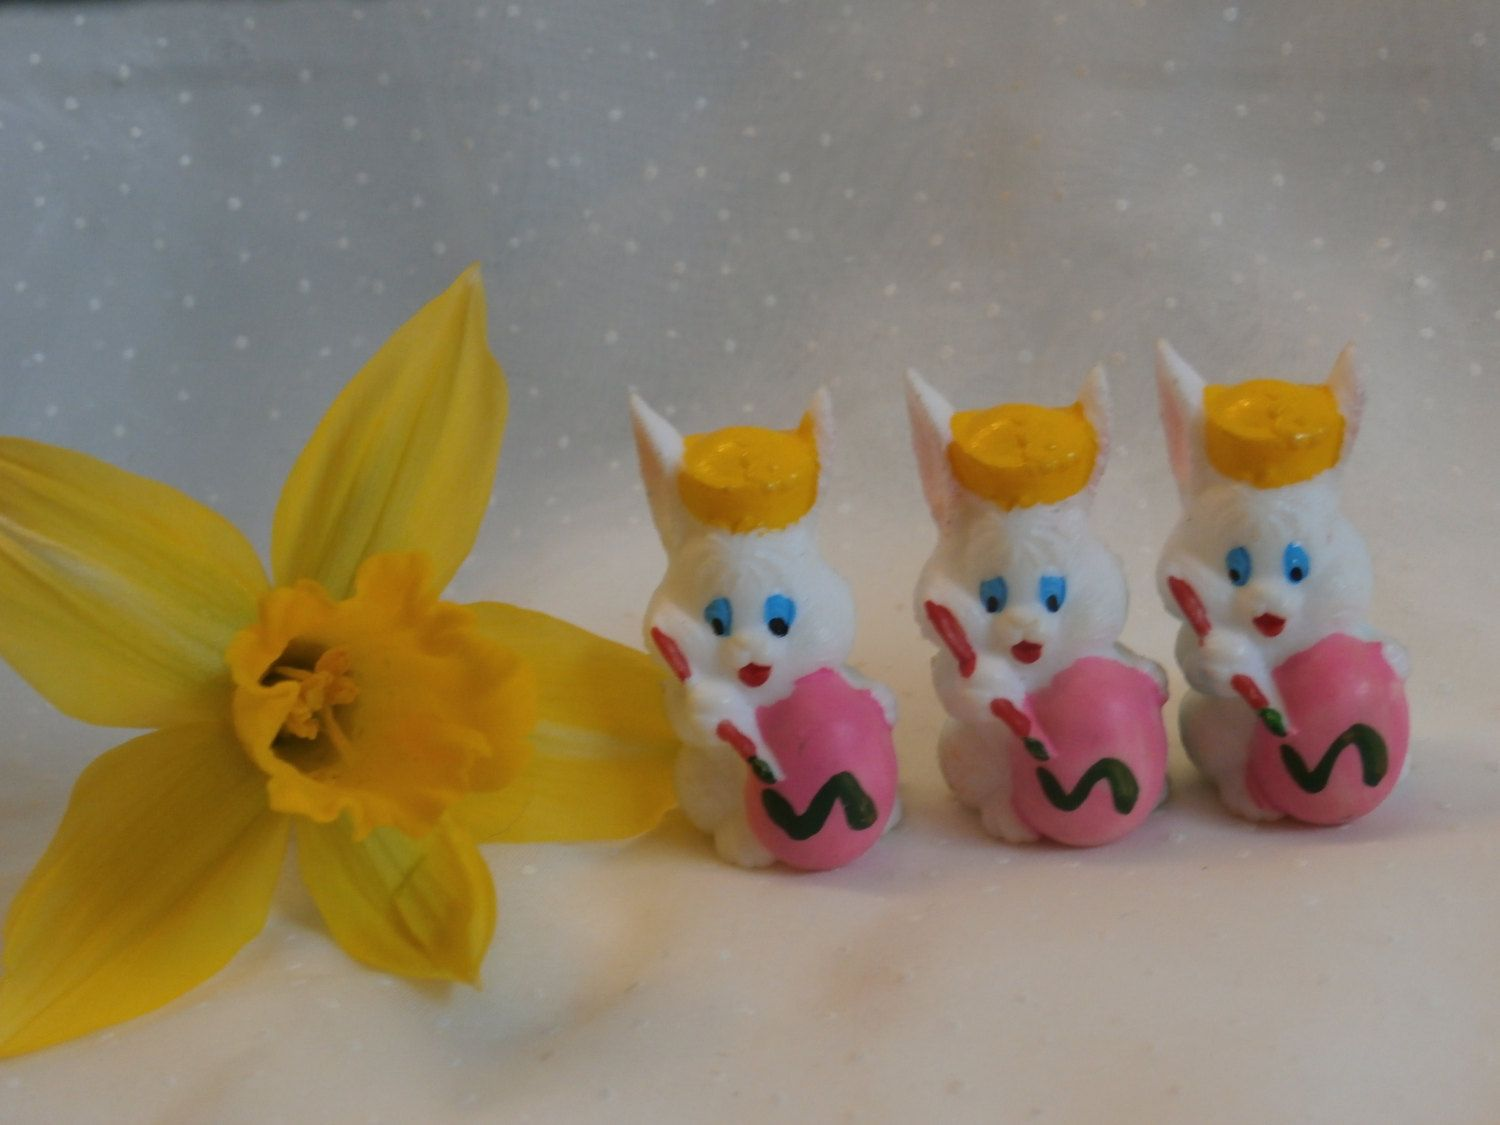 Easter Bunny Painting Egg Figurines for Crafting, Collecting Miniature Supply